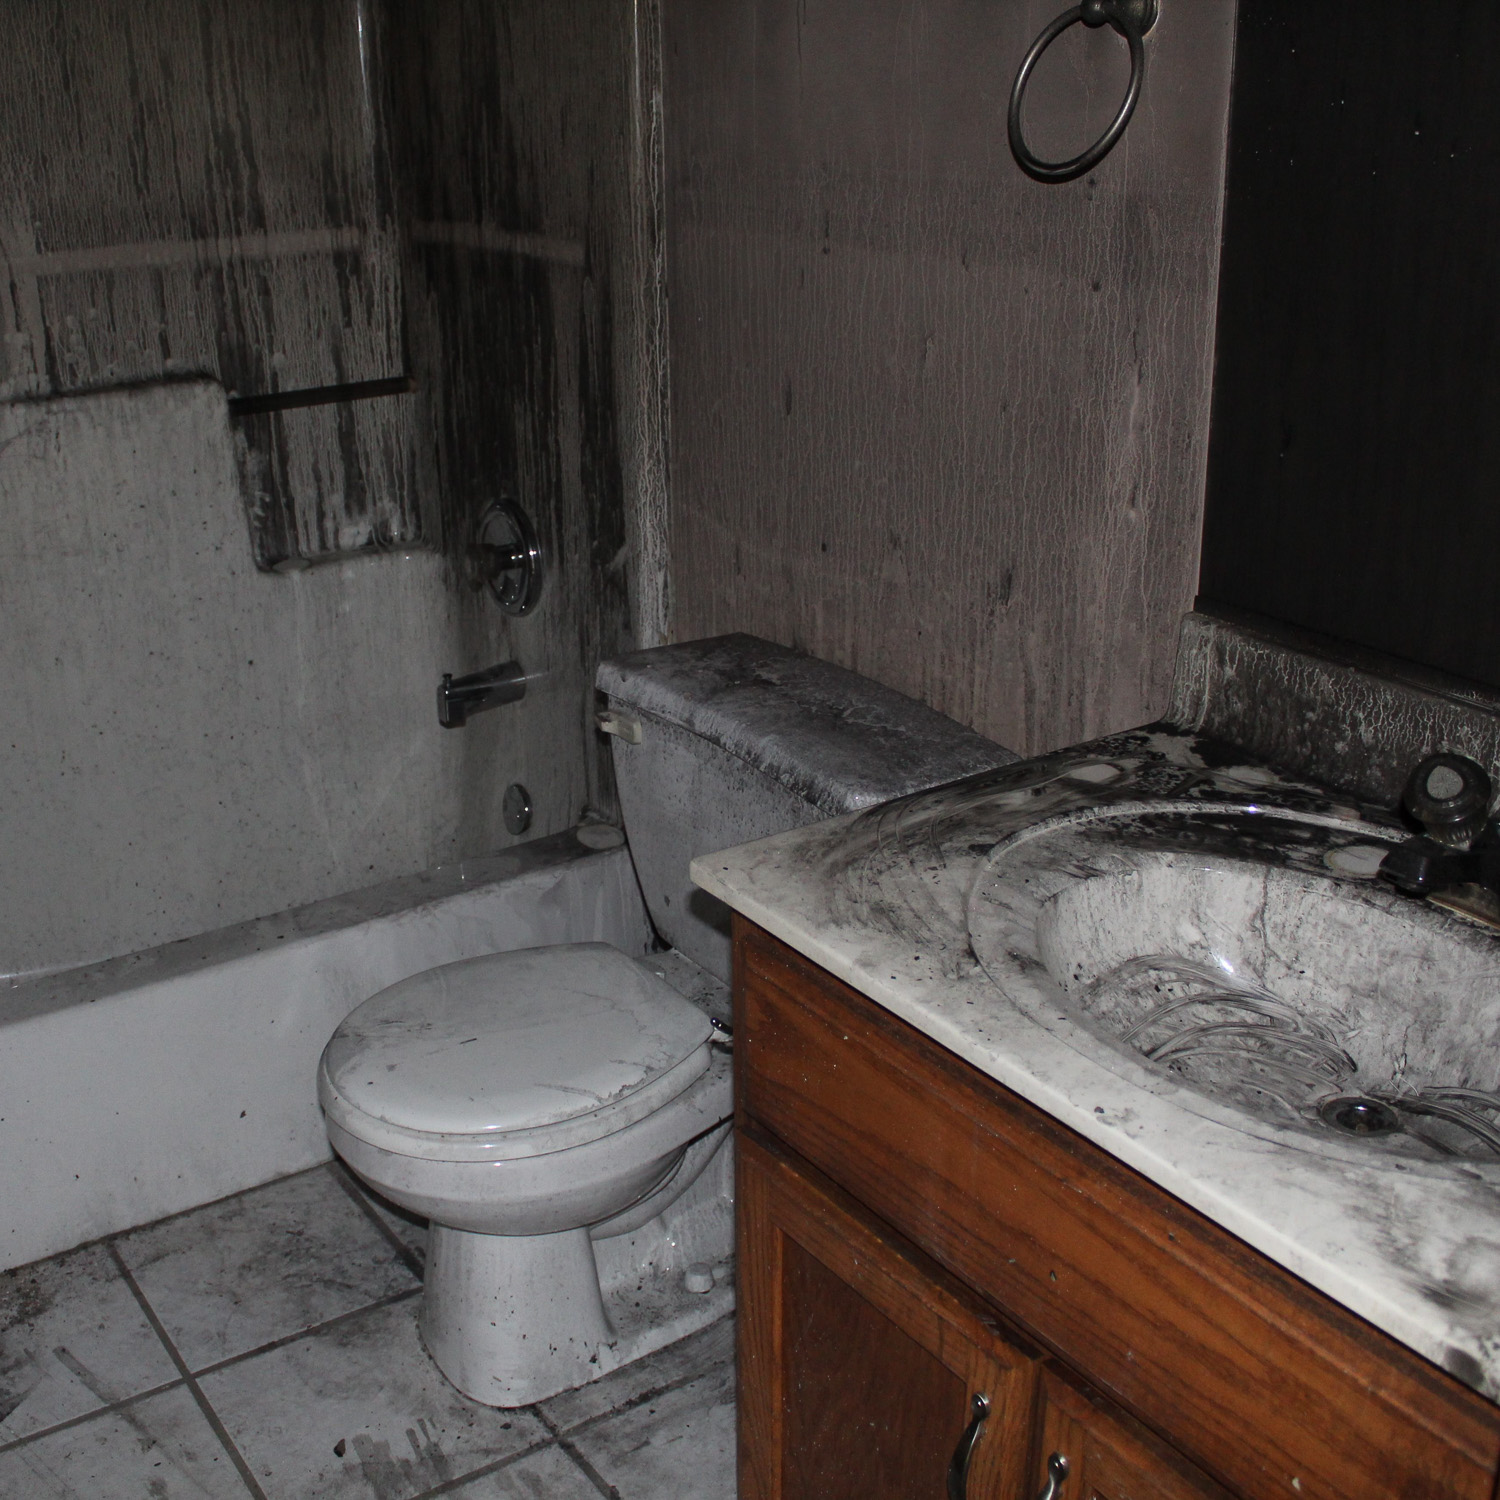 bathroom with fire damage. Soot and smoke damage in a bathroom.